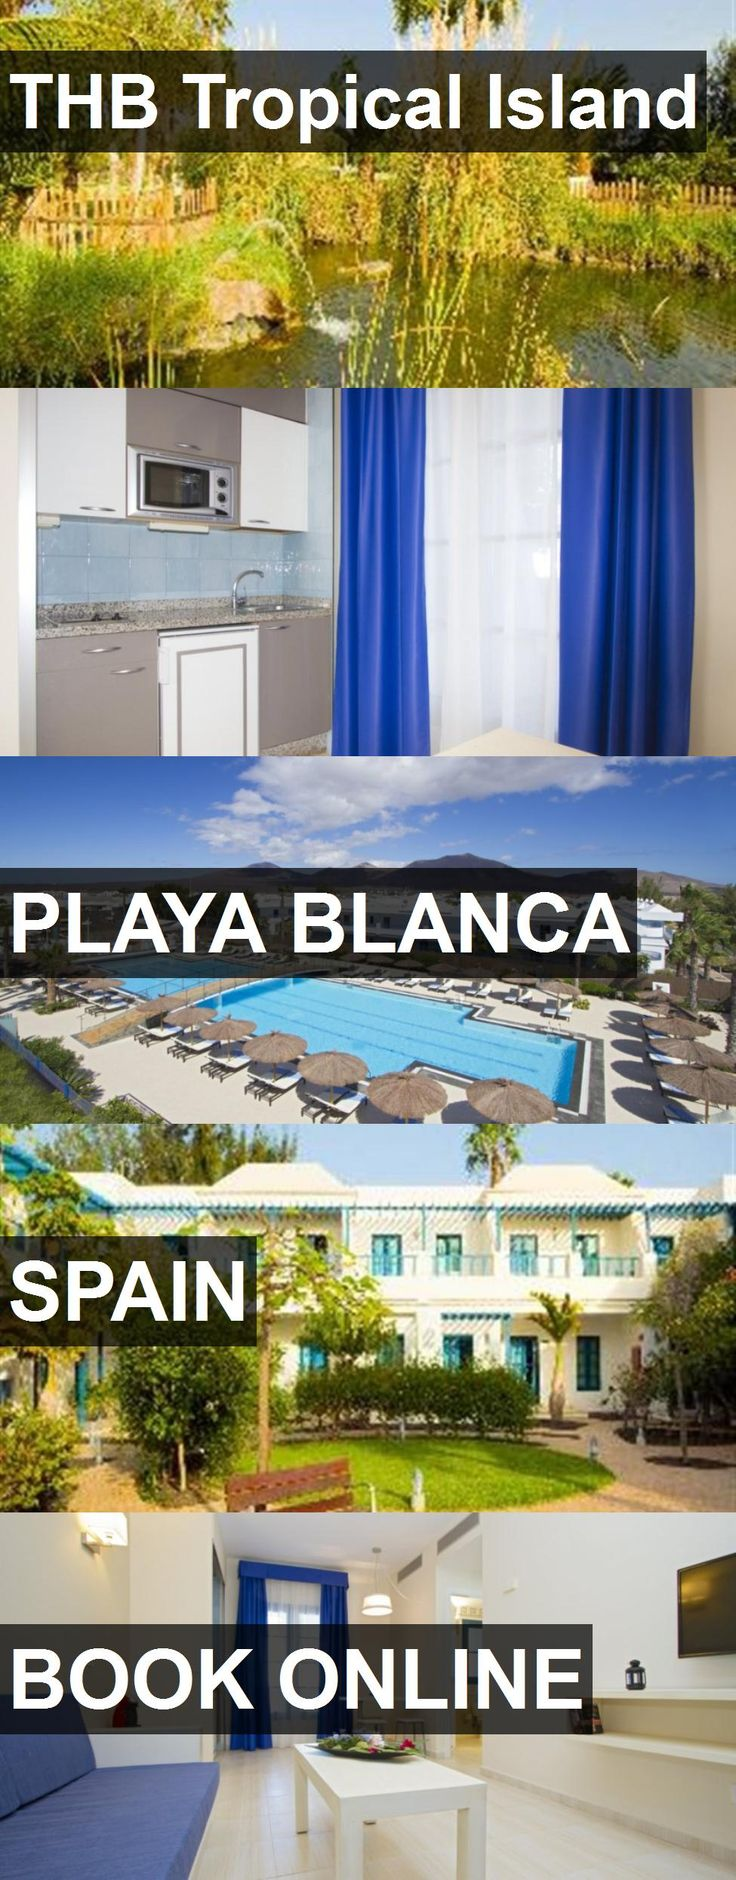 Hotel THB Tropical Island in Playa Blanca, Spain. For more information, photos, reviews and best prices please follow the link. #Spain #PlayaBlanca #travel #vacation #hotel